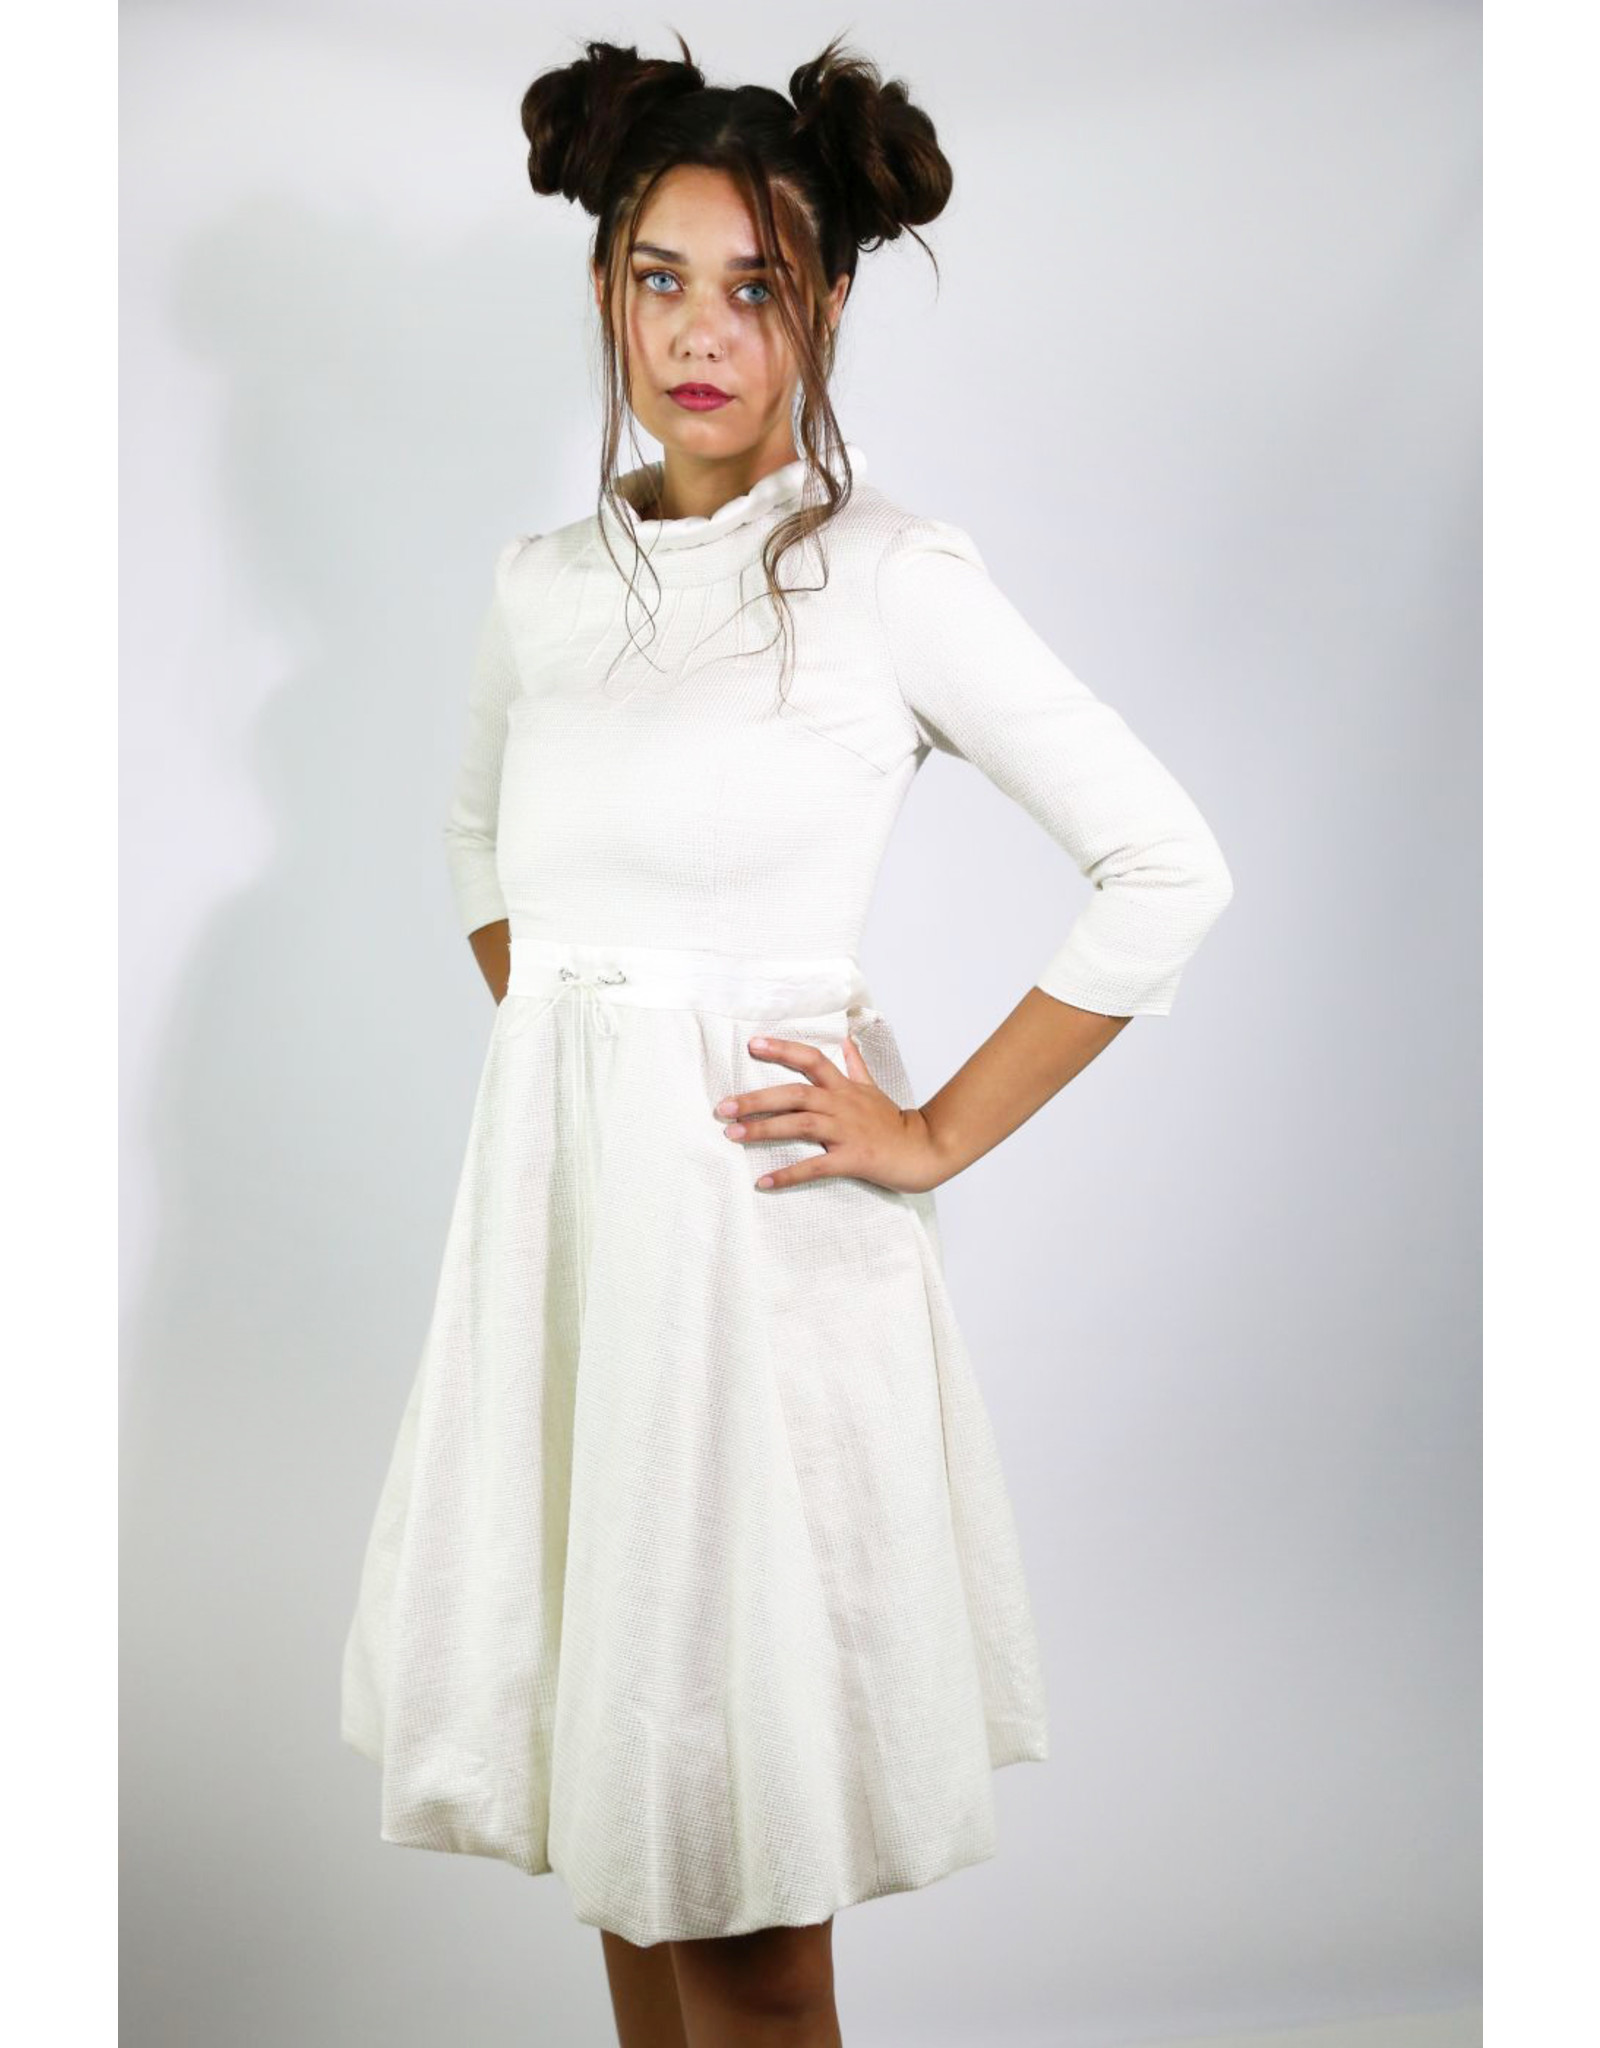 1960's White Astronaut Bubble Dress